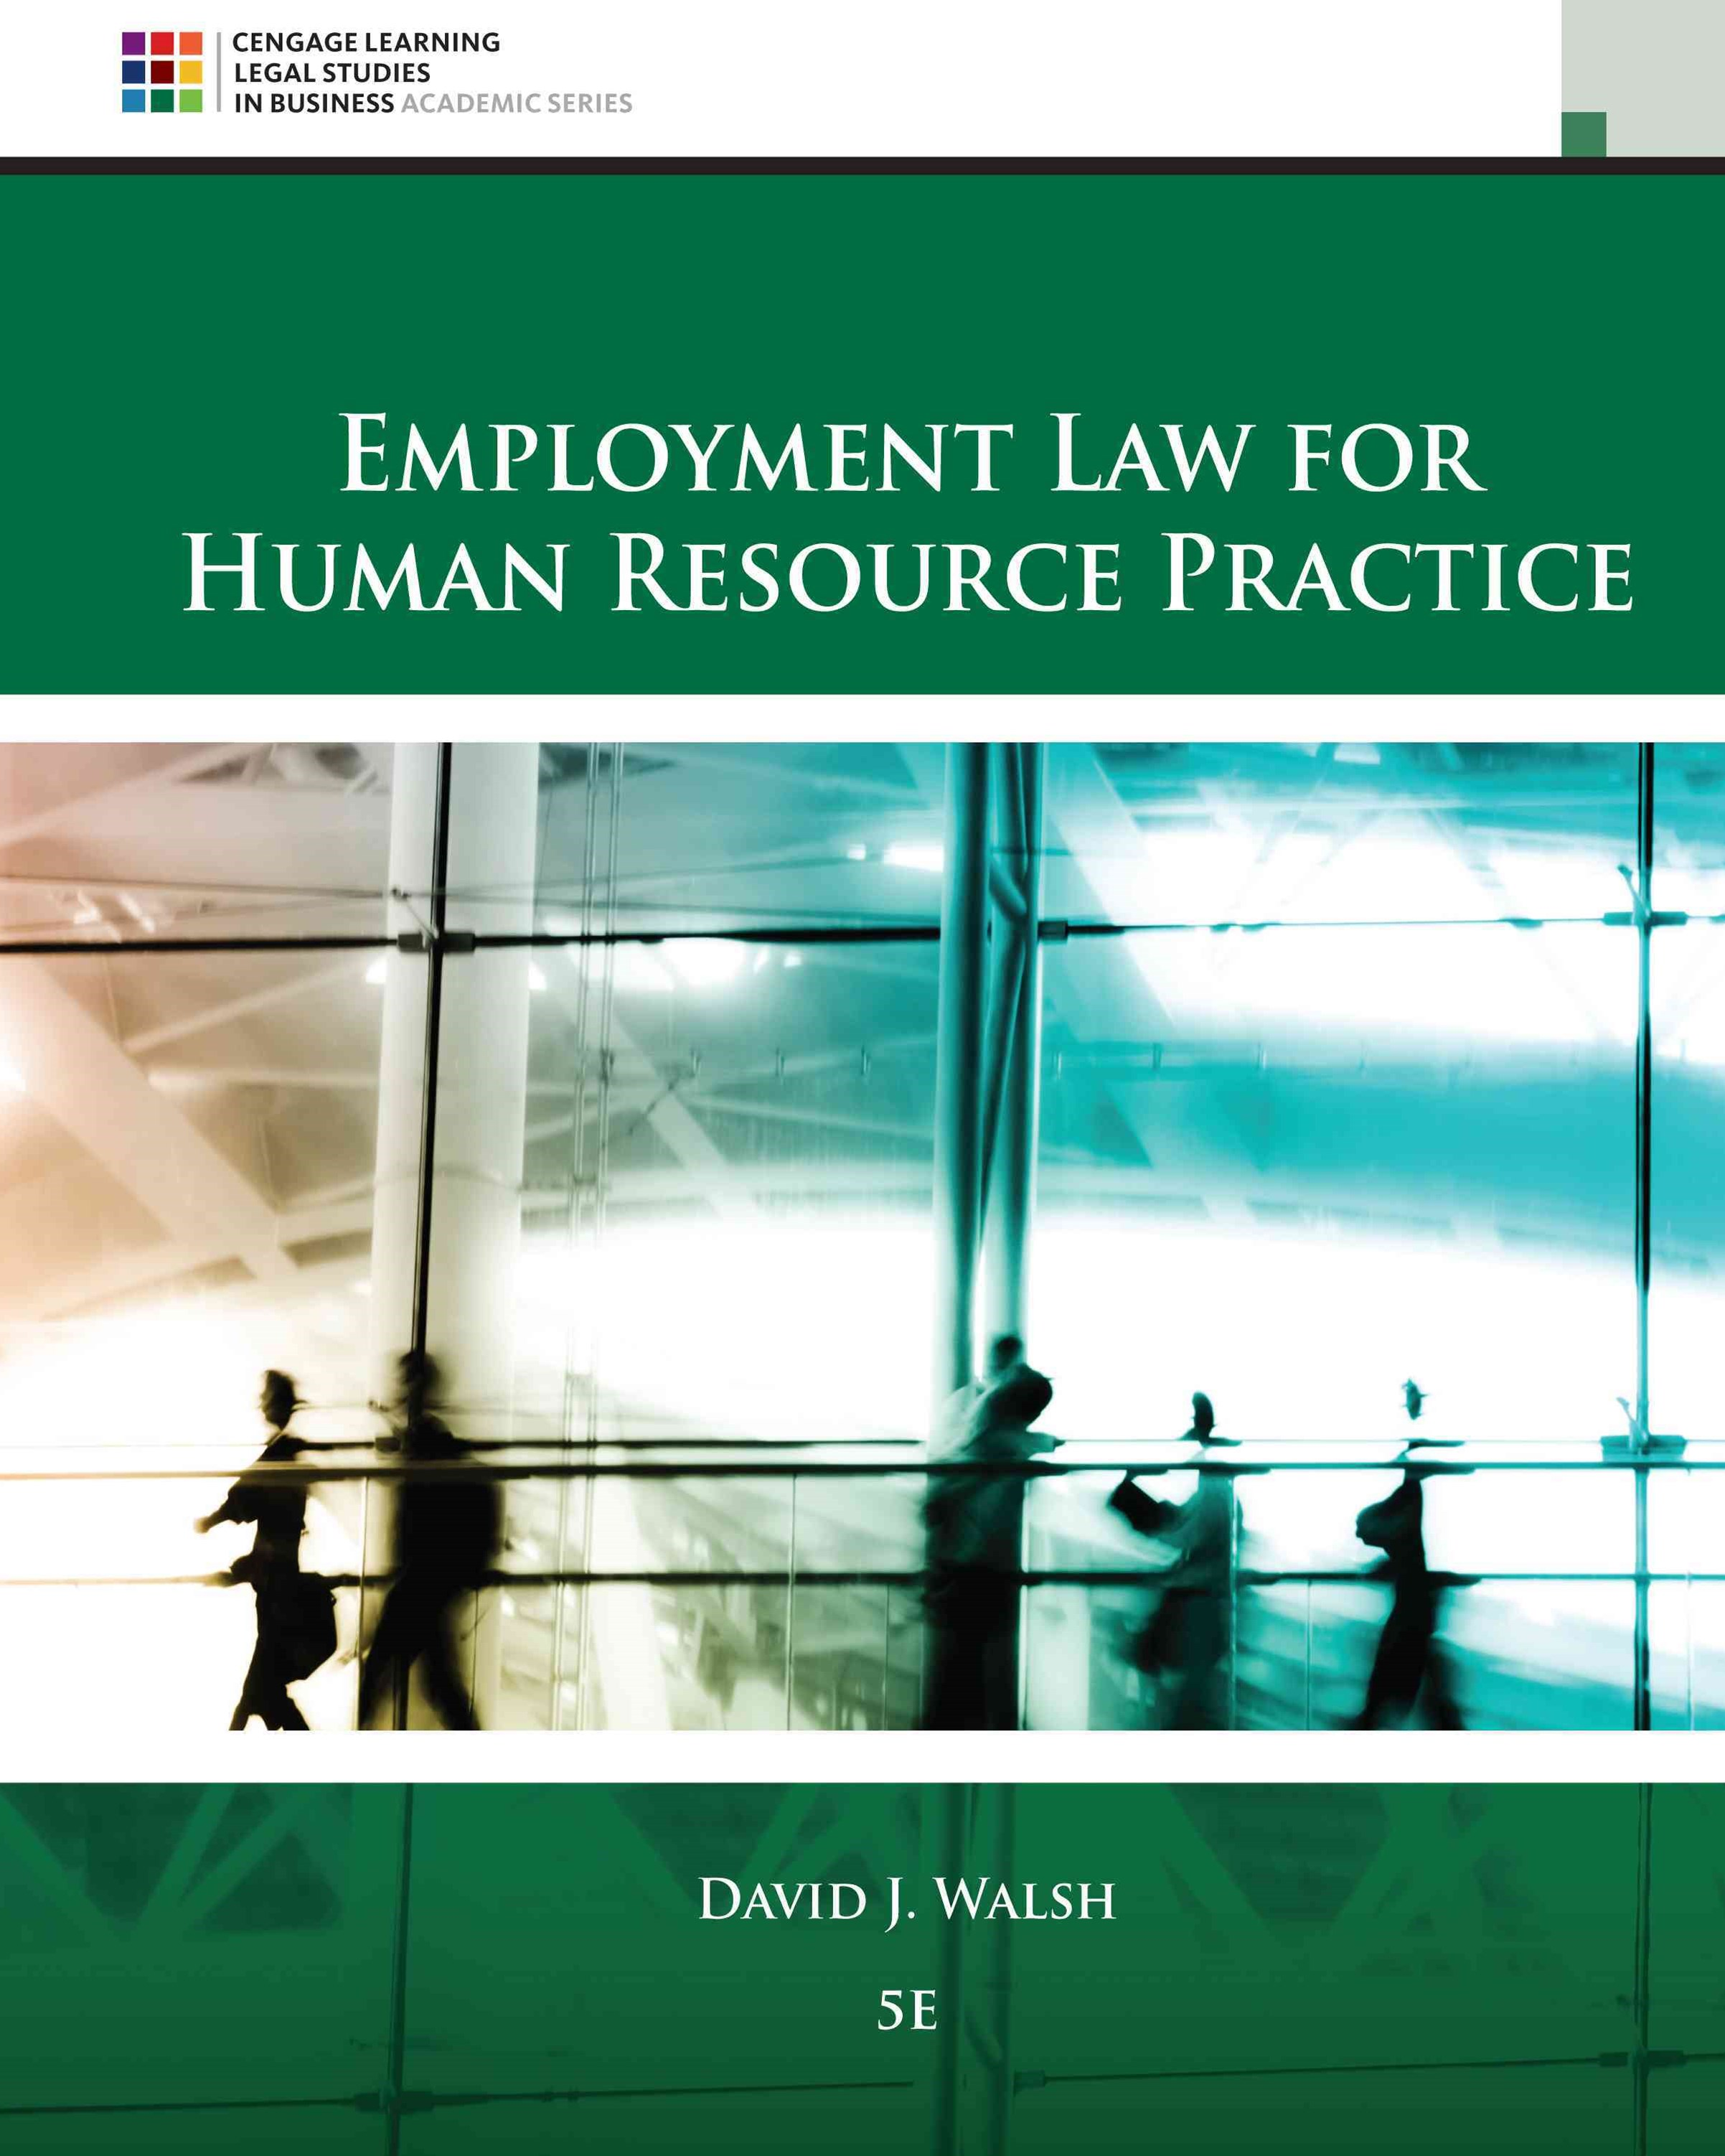 Employment Law for Human Resource Practice